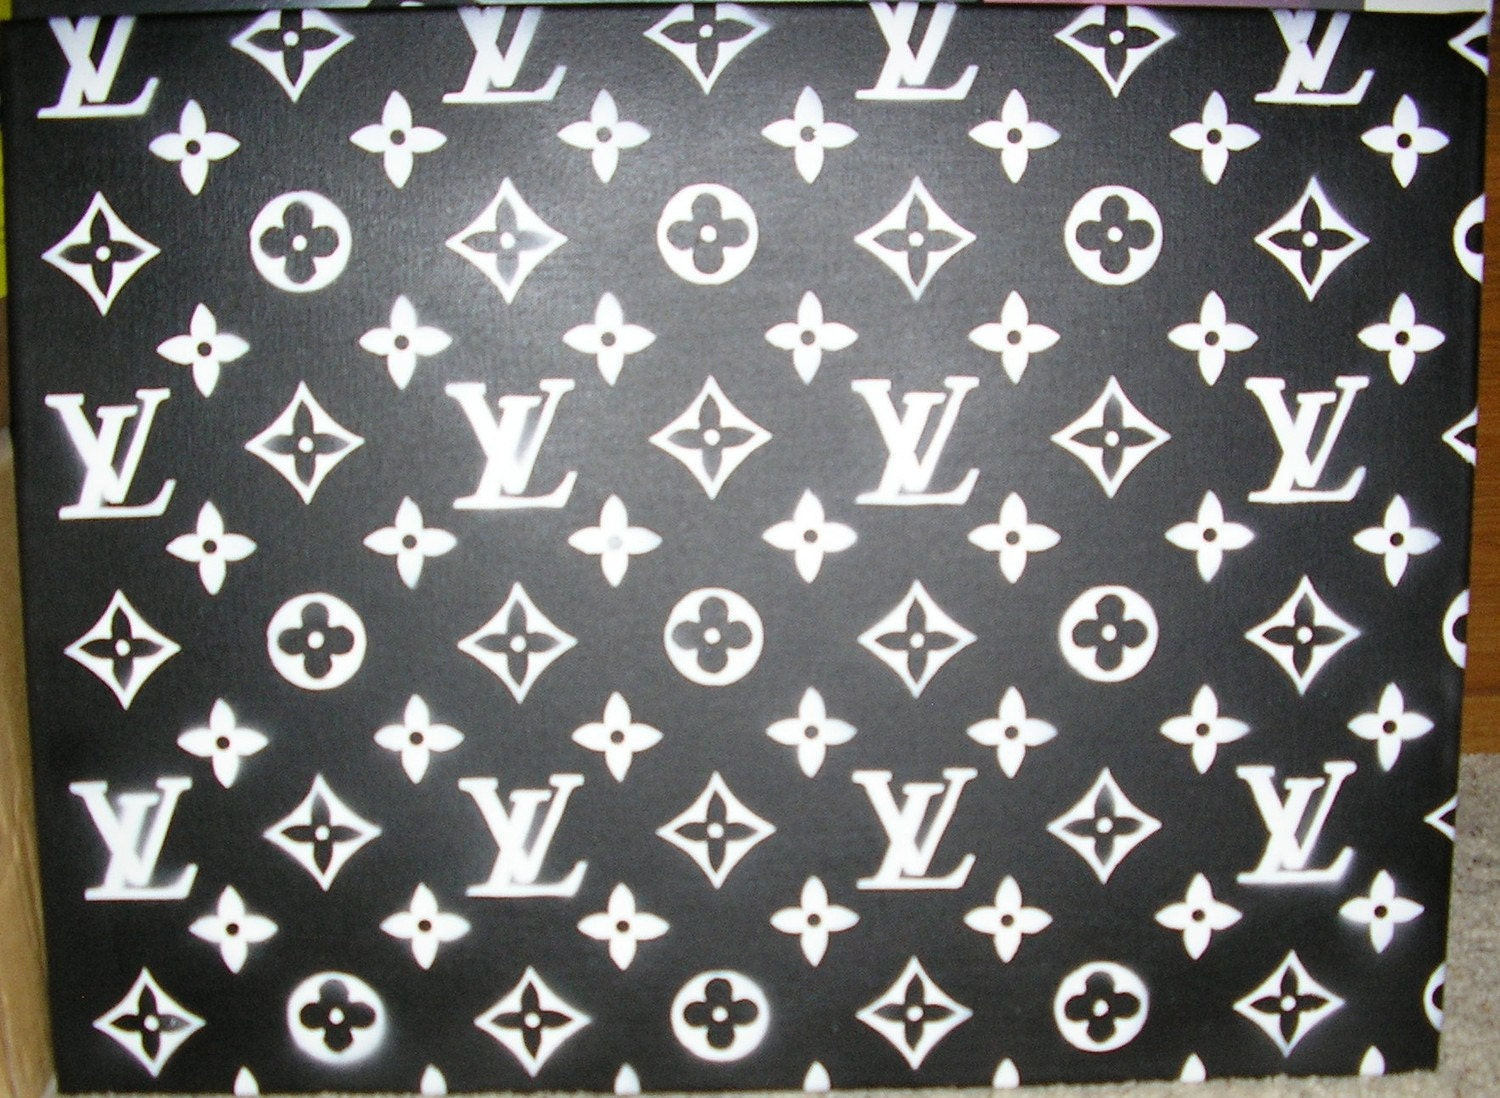 Louis Vuitton Logo Stencil